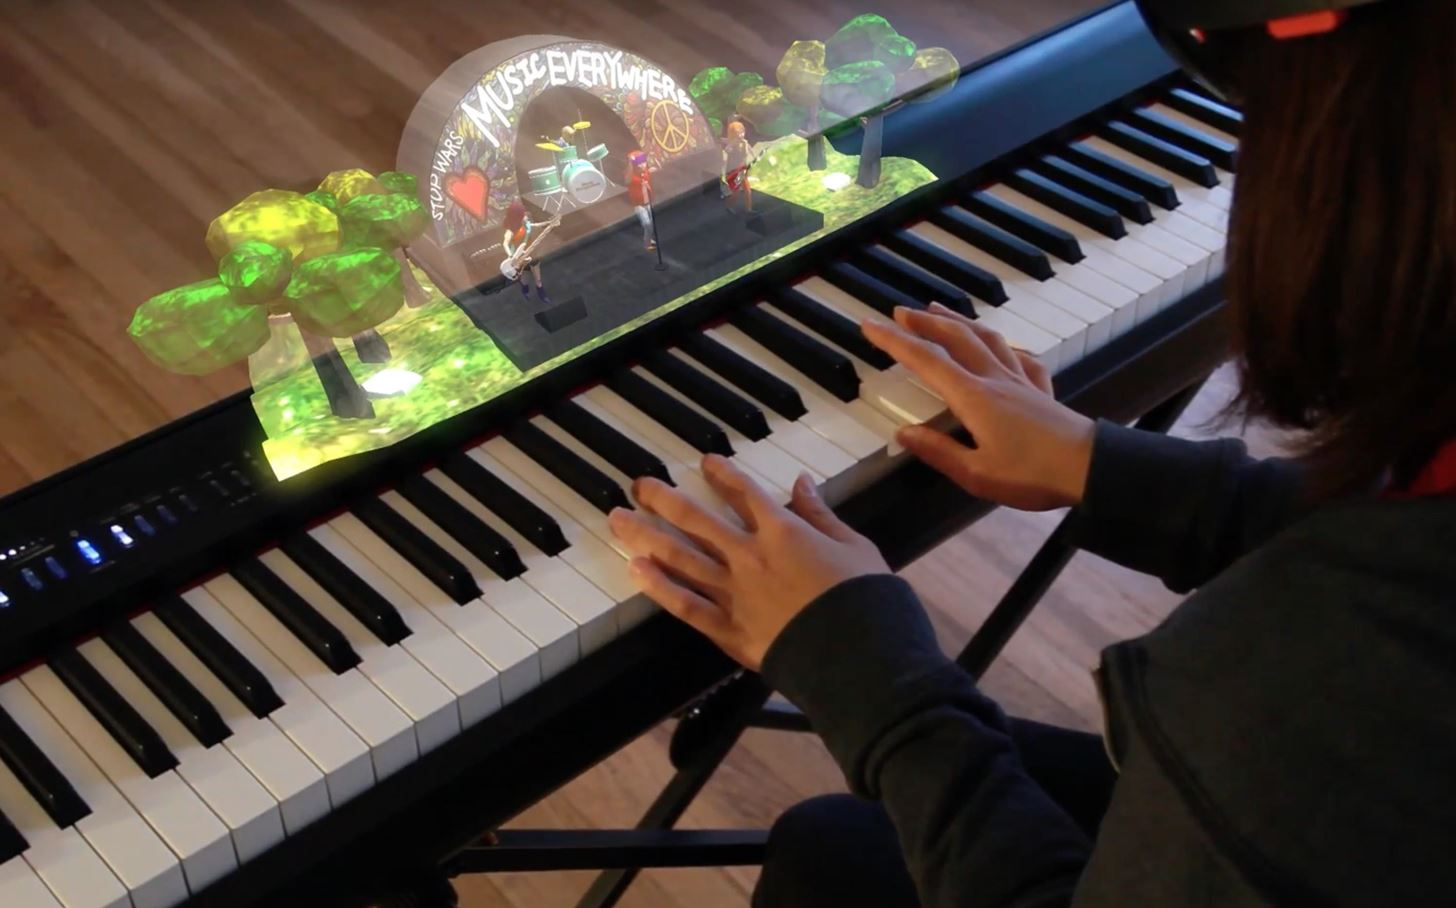 Proof of Concept: Music Everywhere Uses HoloLens to Help Piano Students Learn Improvisation